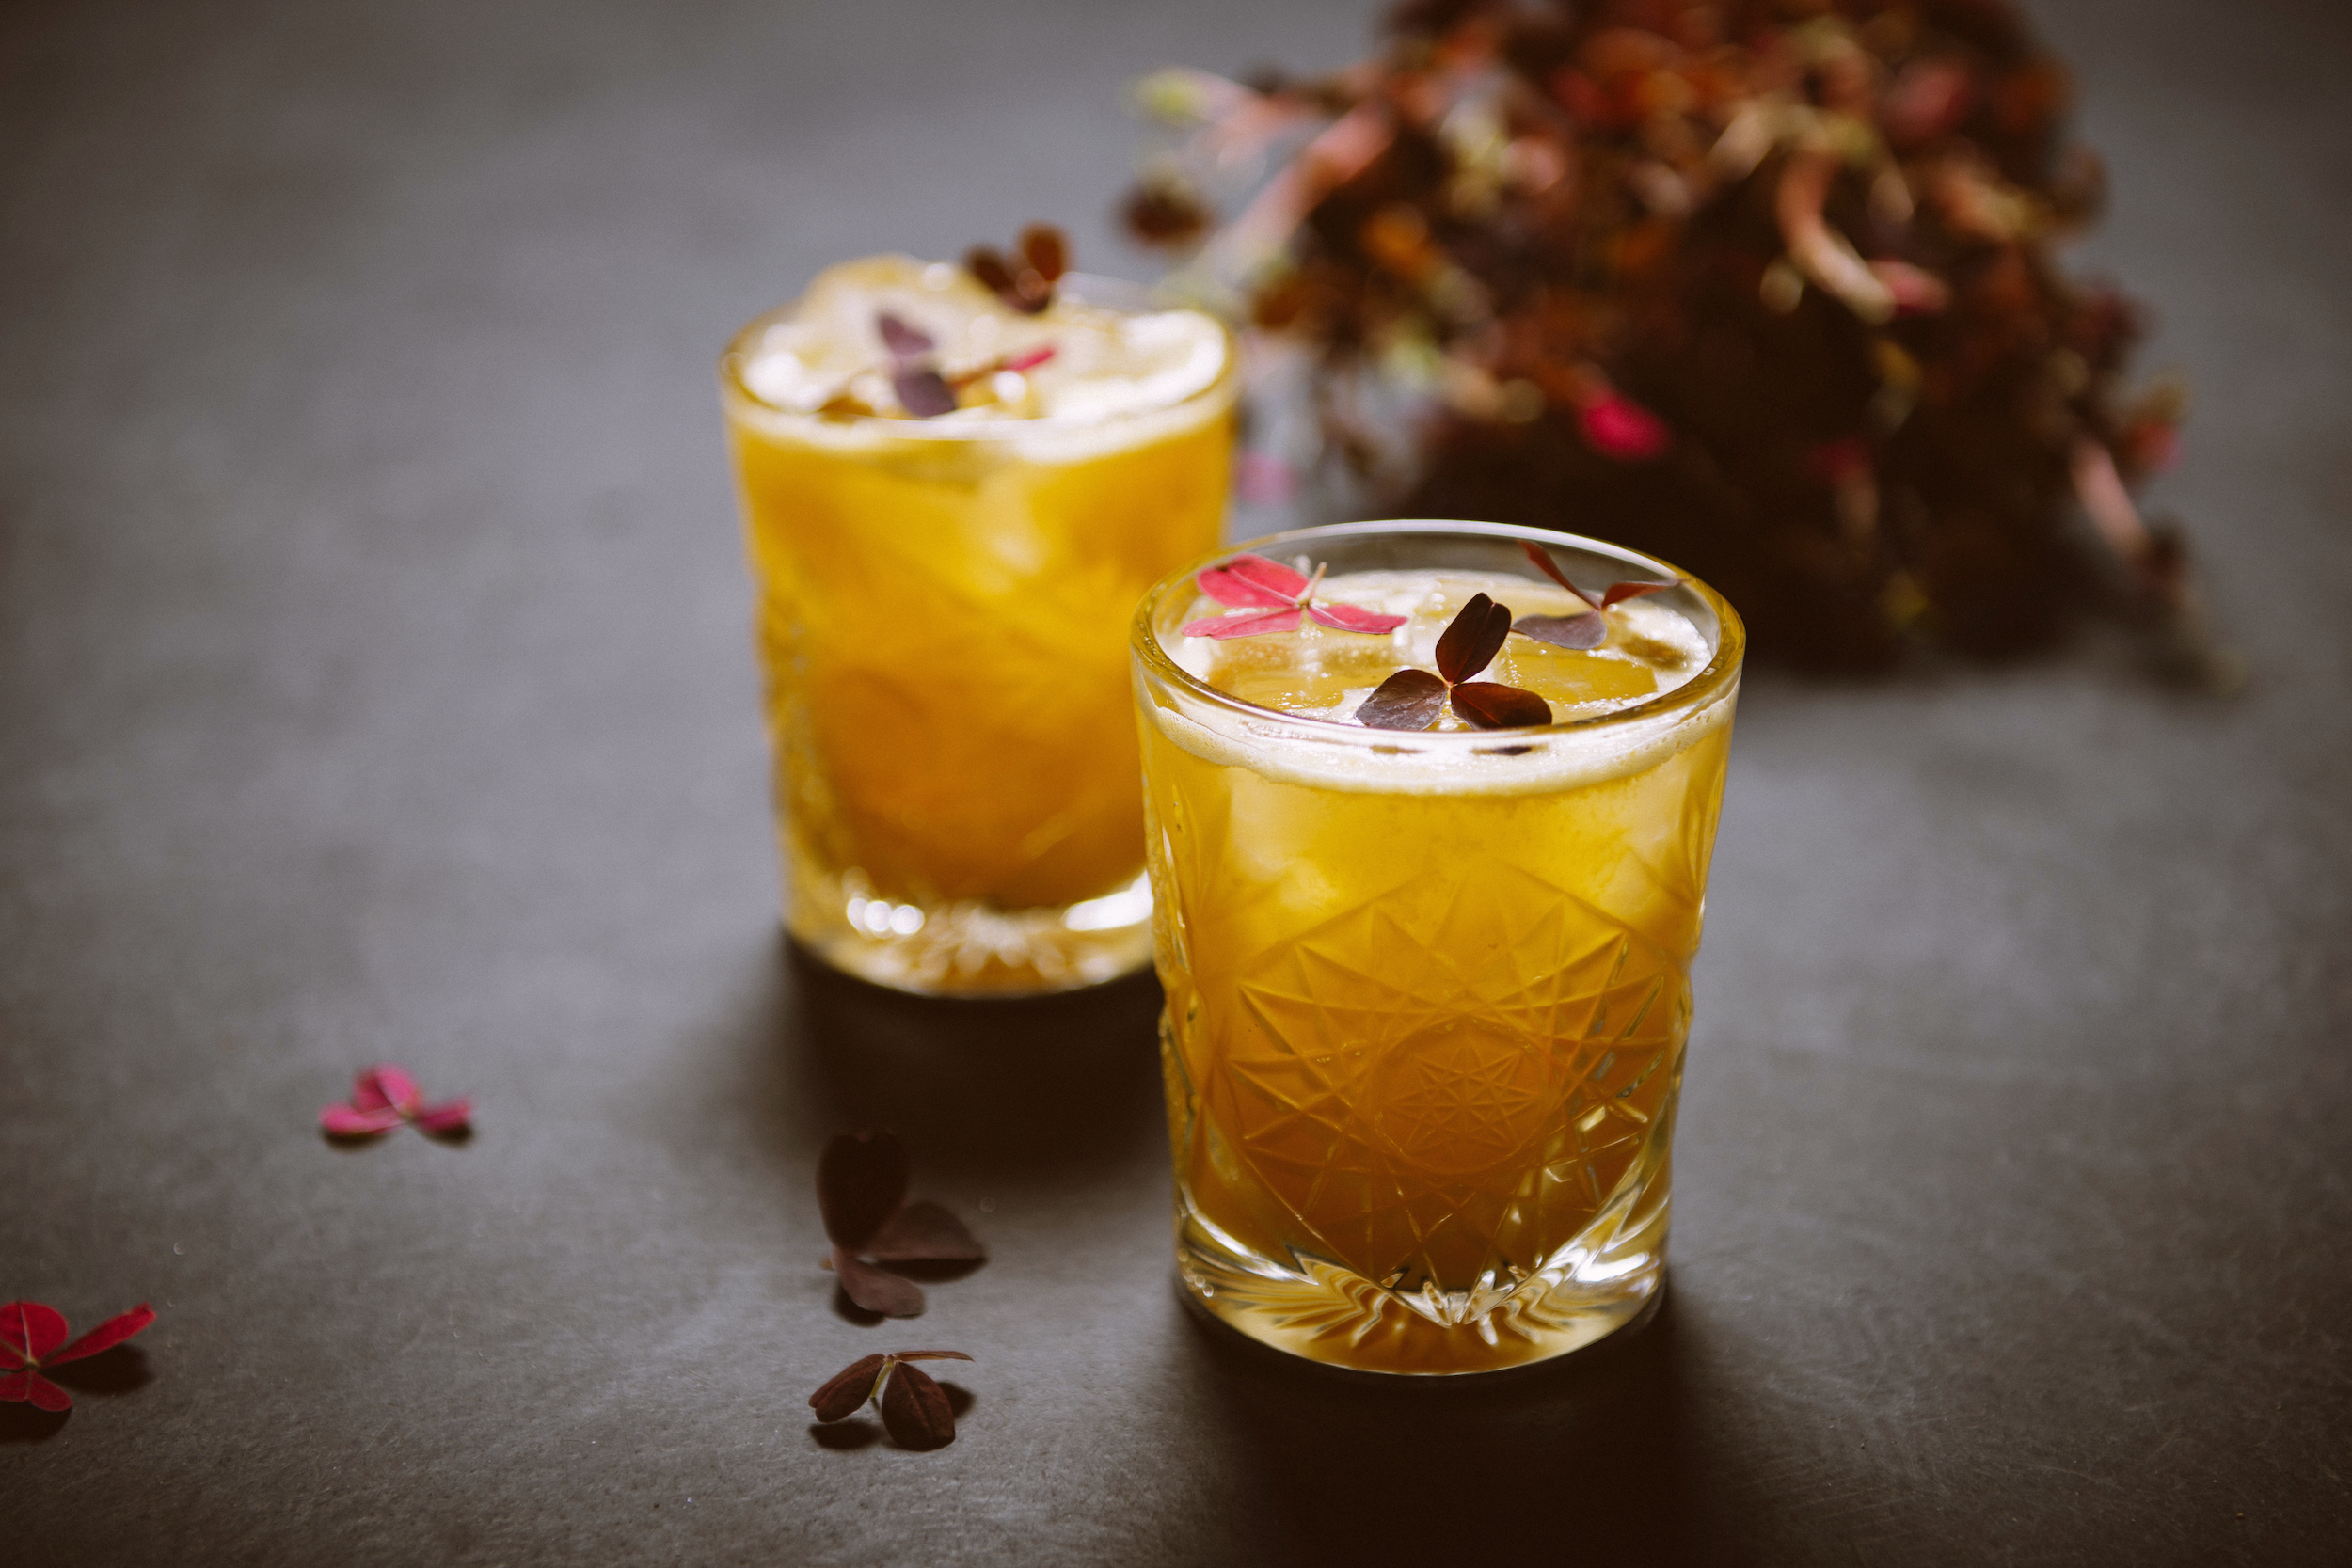 Norseman Sour - The award-winning Norseman Sour consists of gin, seabuckthorne, raw liquorice and wood sorrel. It earned Hardeep the award for Best Nordic Cocktail in 2014.